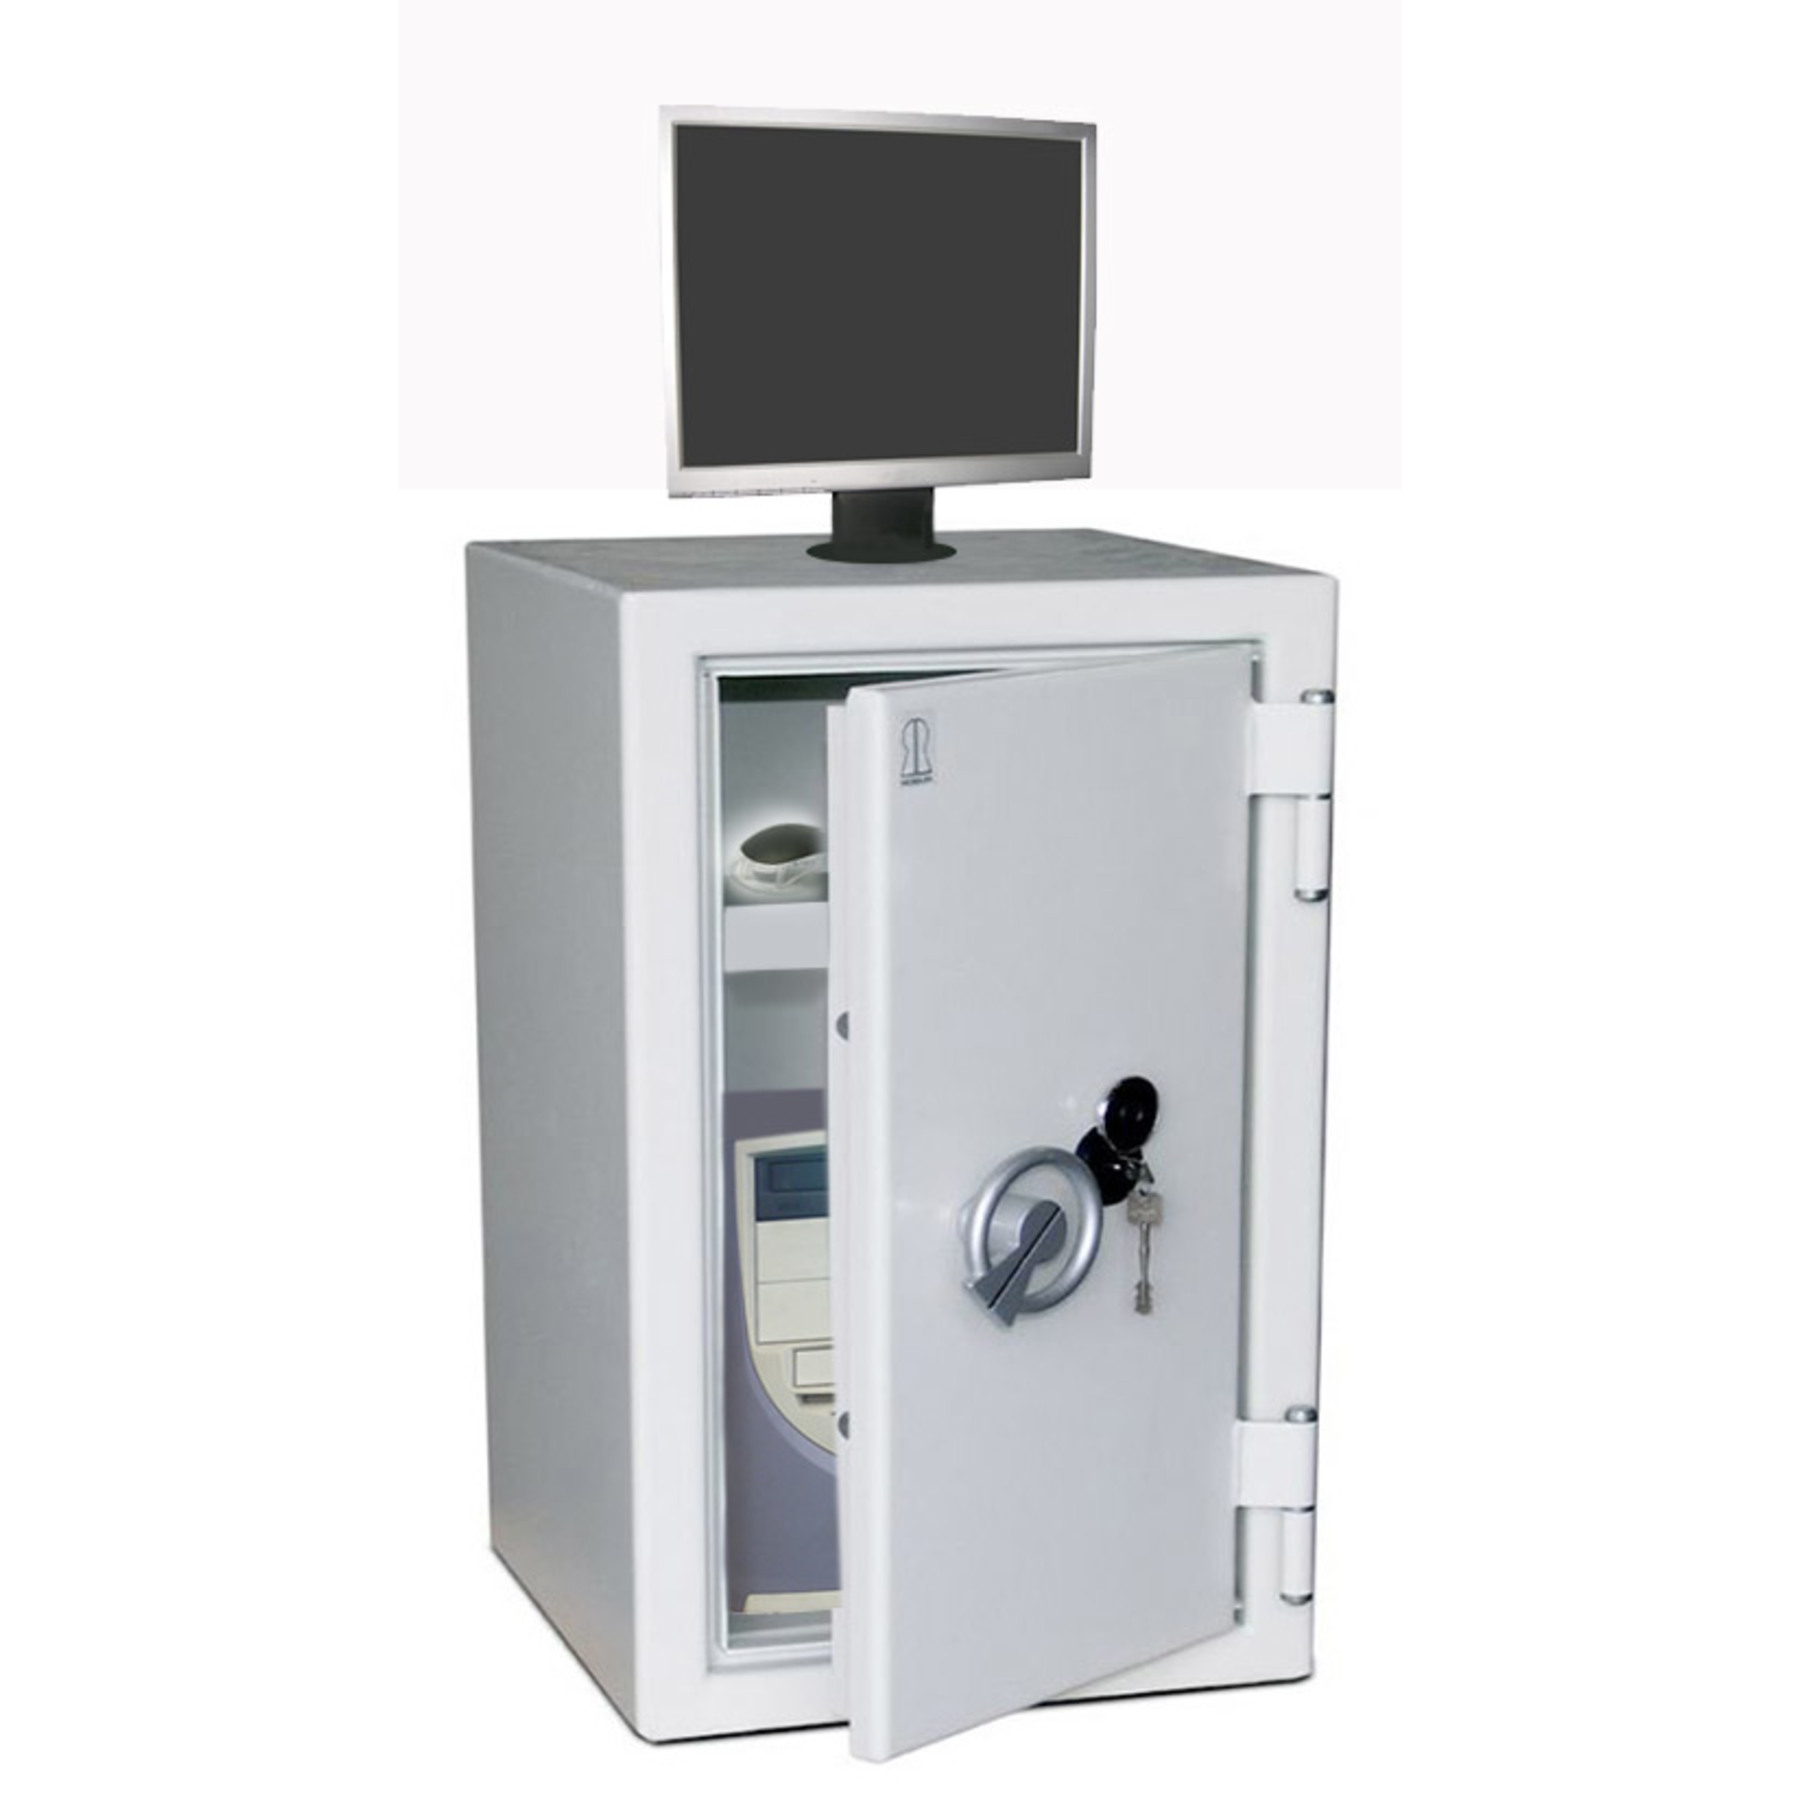 Robur RSKS 1200 Secure Server Cabinet | All Safes Ireland